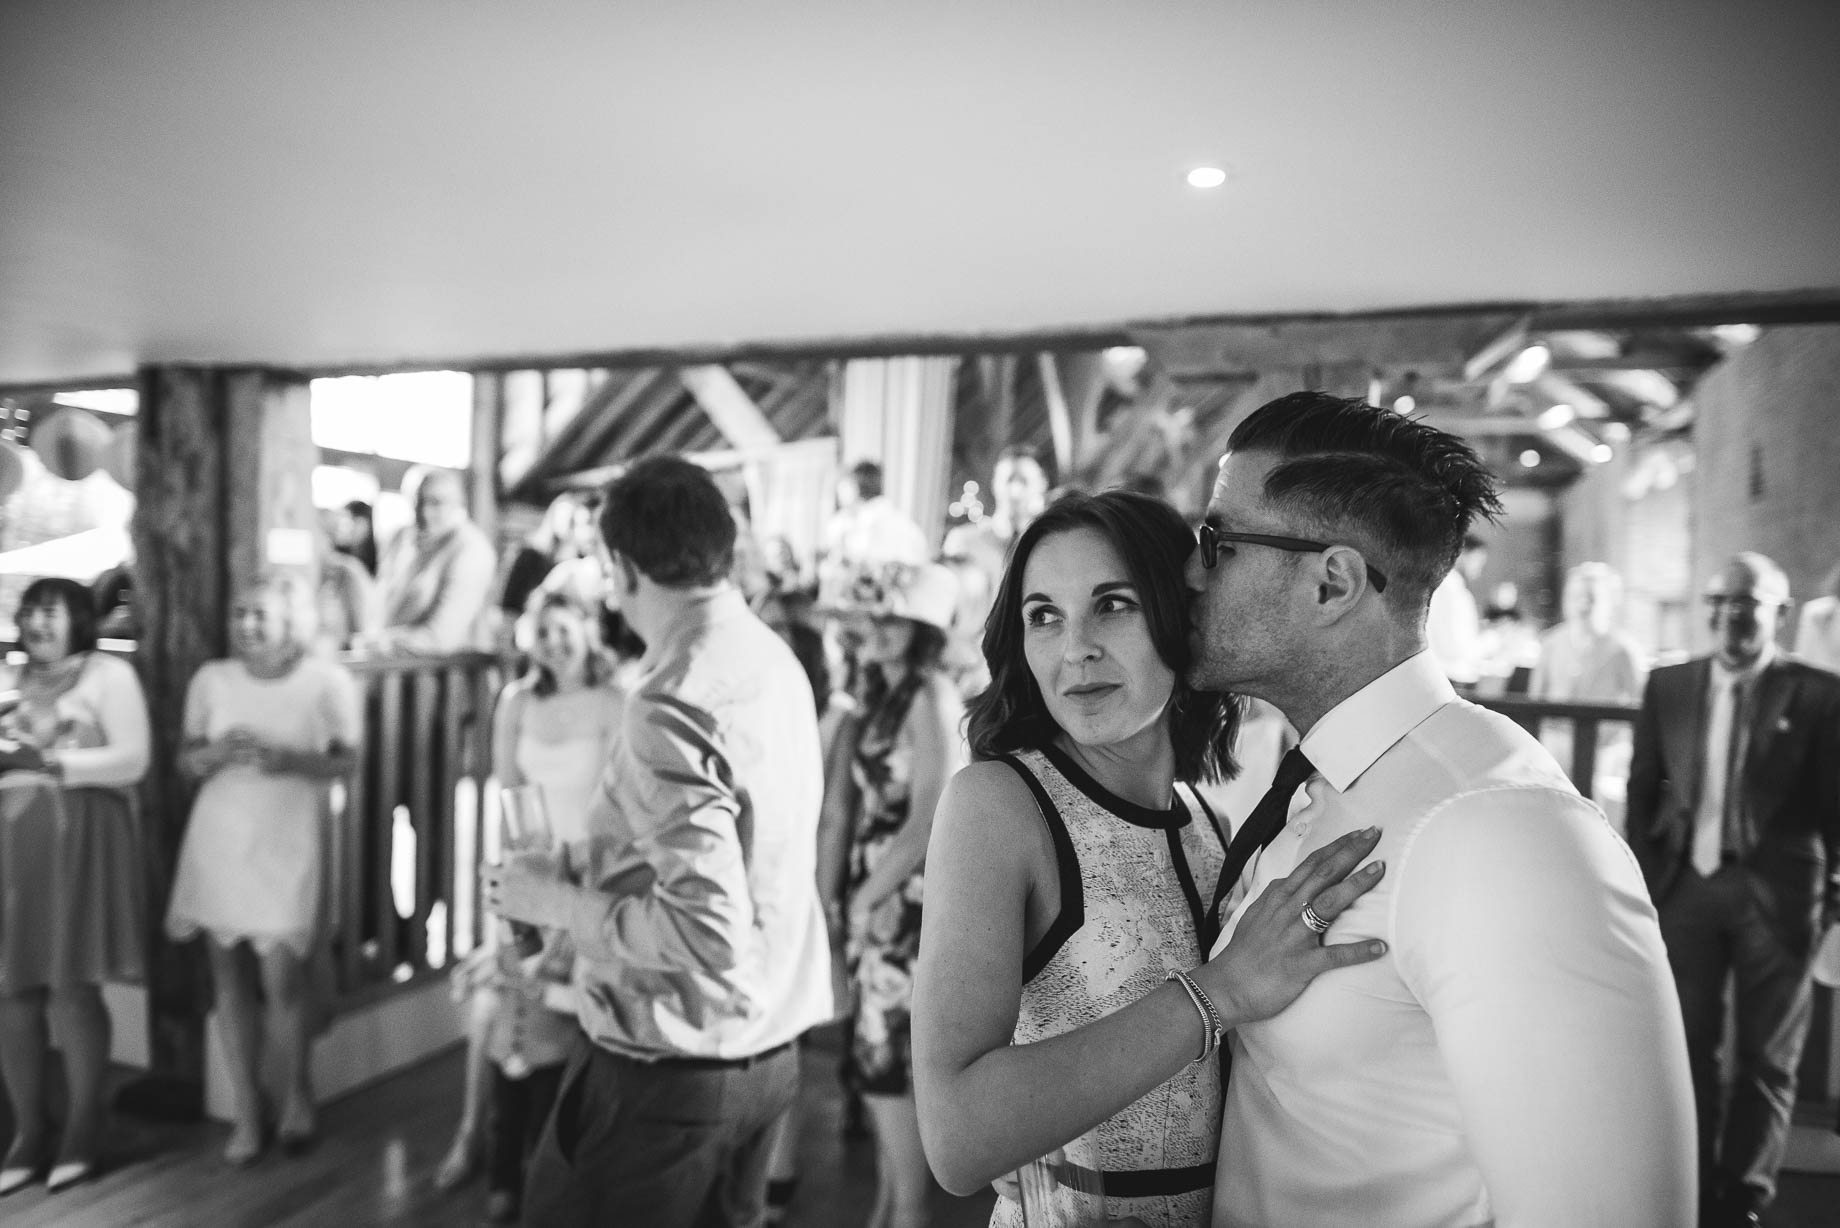 Bury Court Barn wedding photography by Guy Collier - Jo and Jamie (154 of 160)